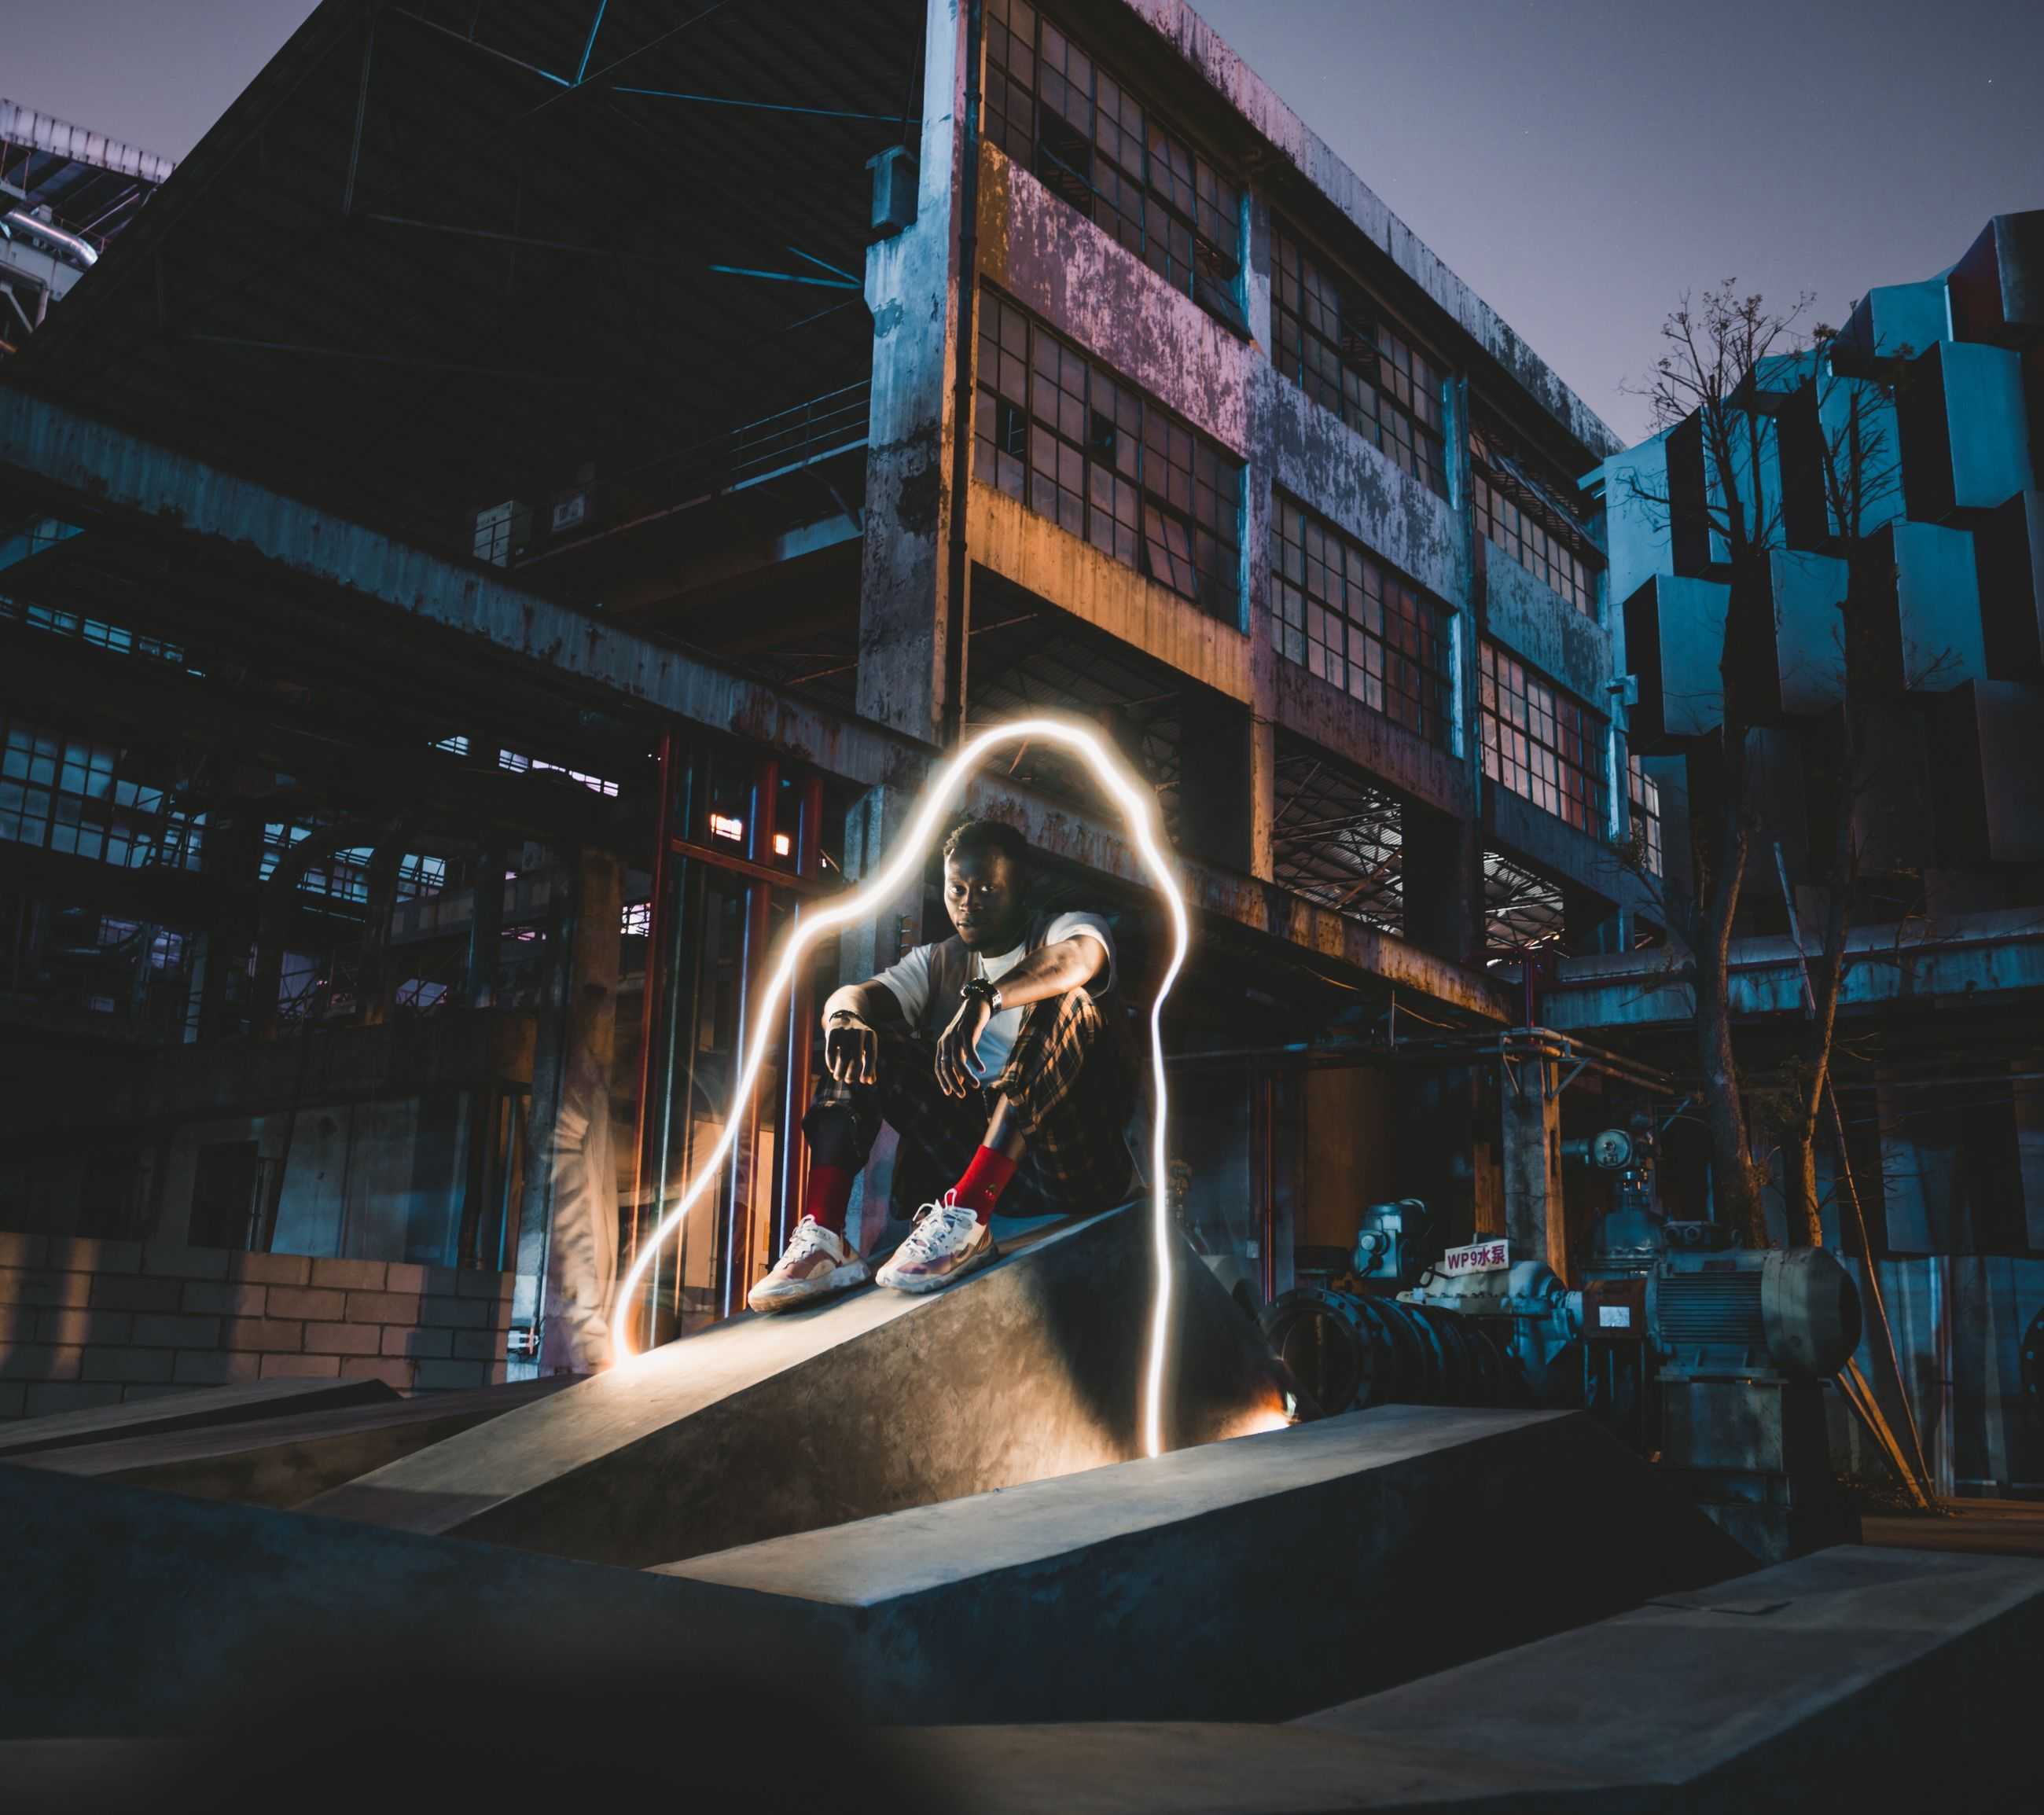 real people, built structure, architecture, motion, one person, building exterior, lifestyles, nature, skill, illuminated, women, blurred motion, men, leisure activity, sport, sky, outdoors, industry, occupation